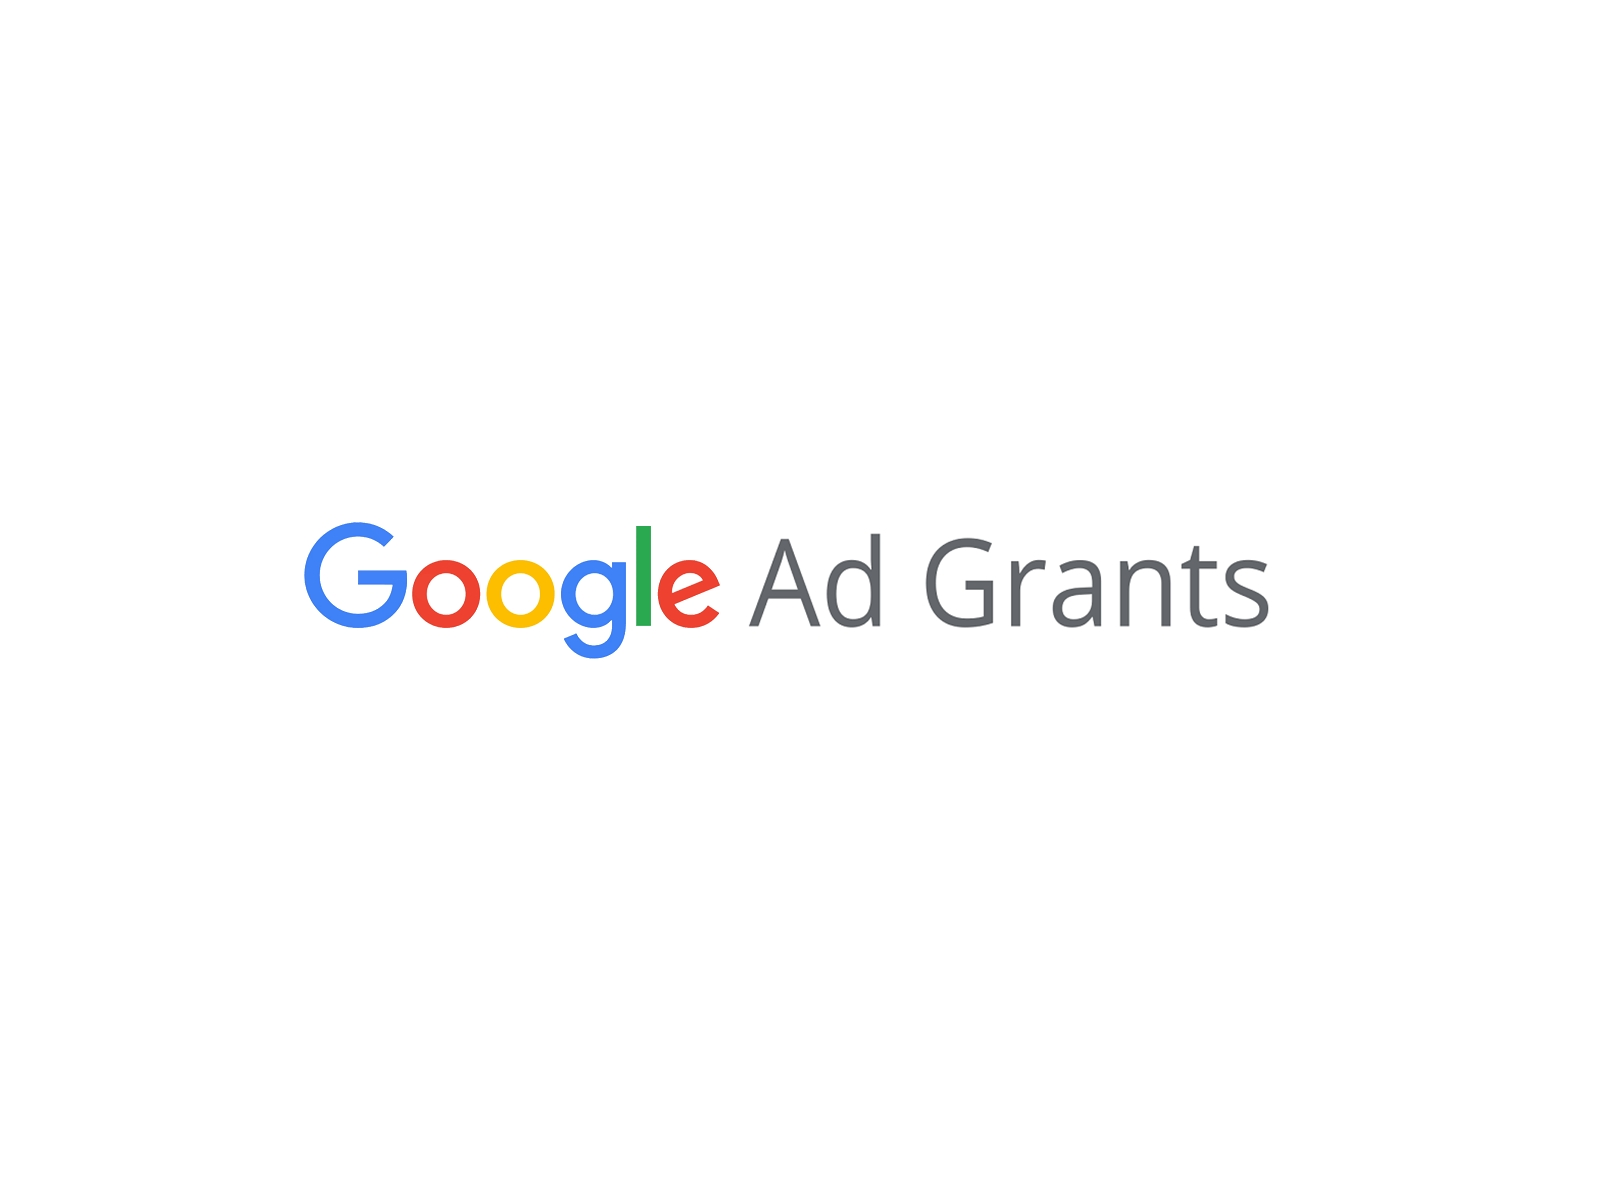 Google Ad Grants for Non-Profit